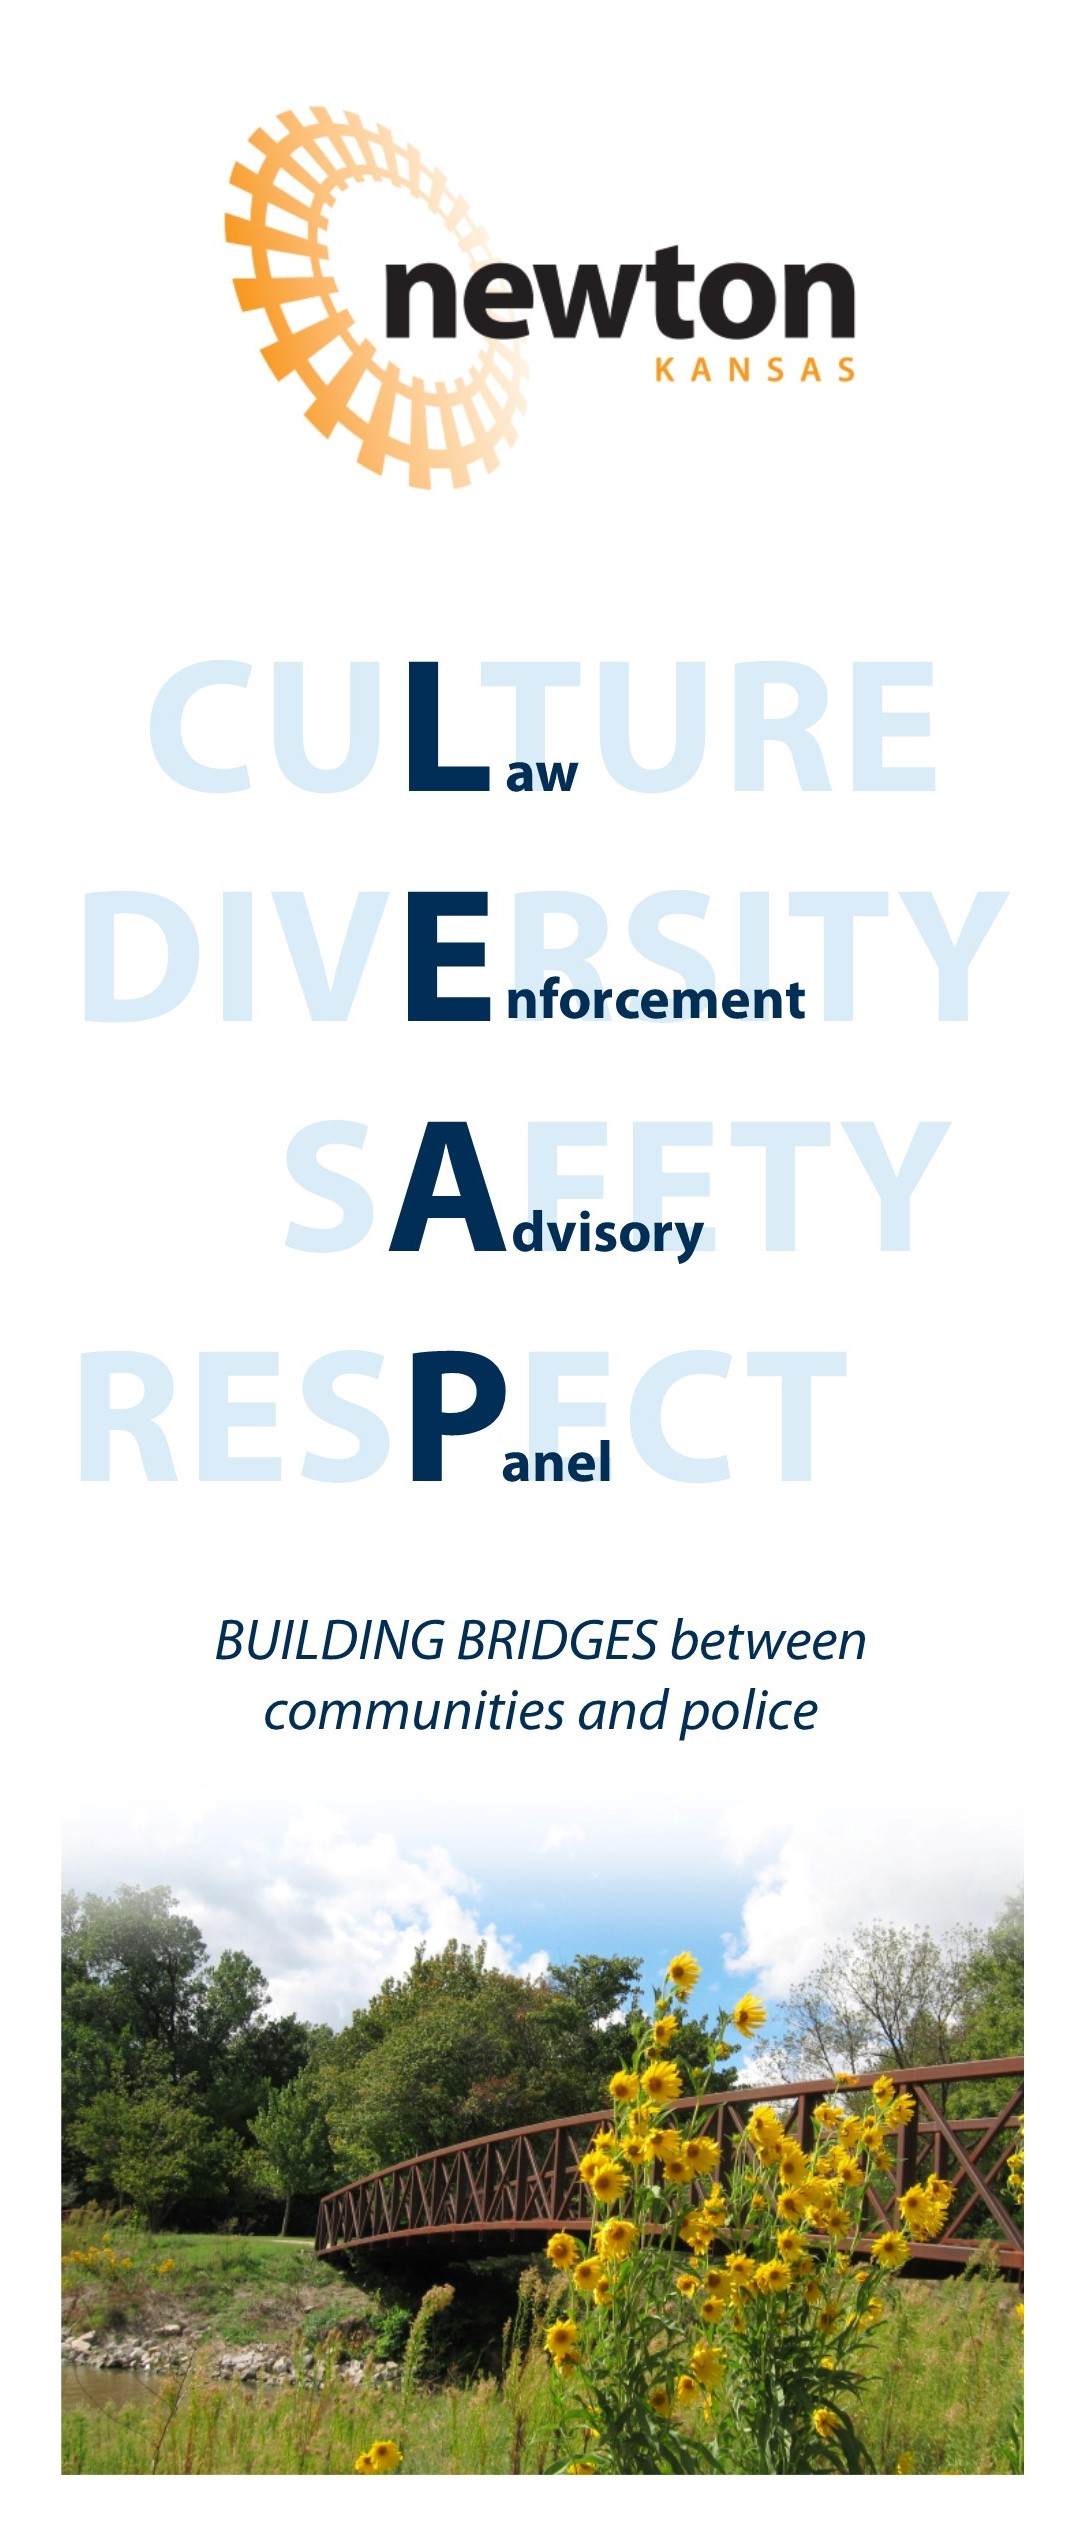 LEAP brochure. Text: Culture, Diversity, Safety, Respect; Building Bridges between Communities and Police